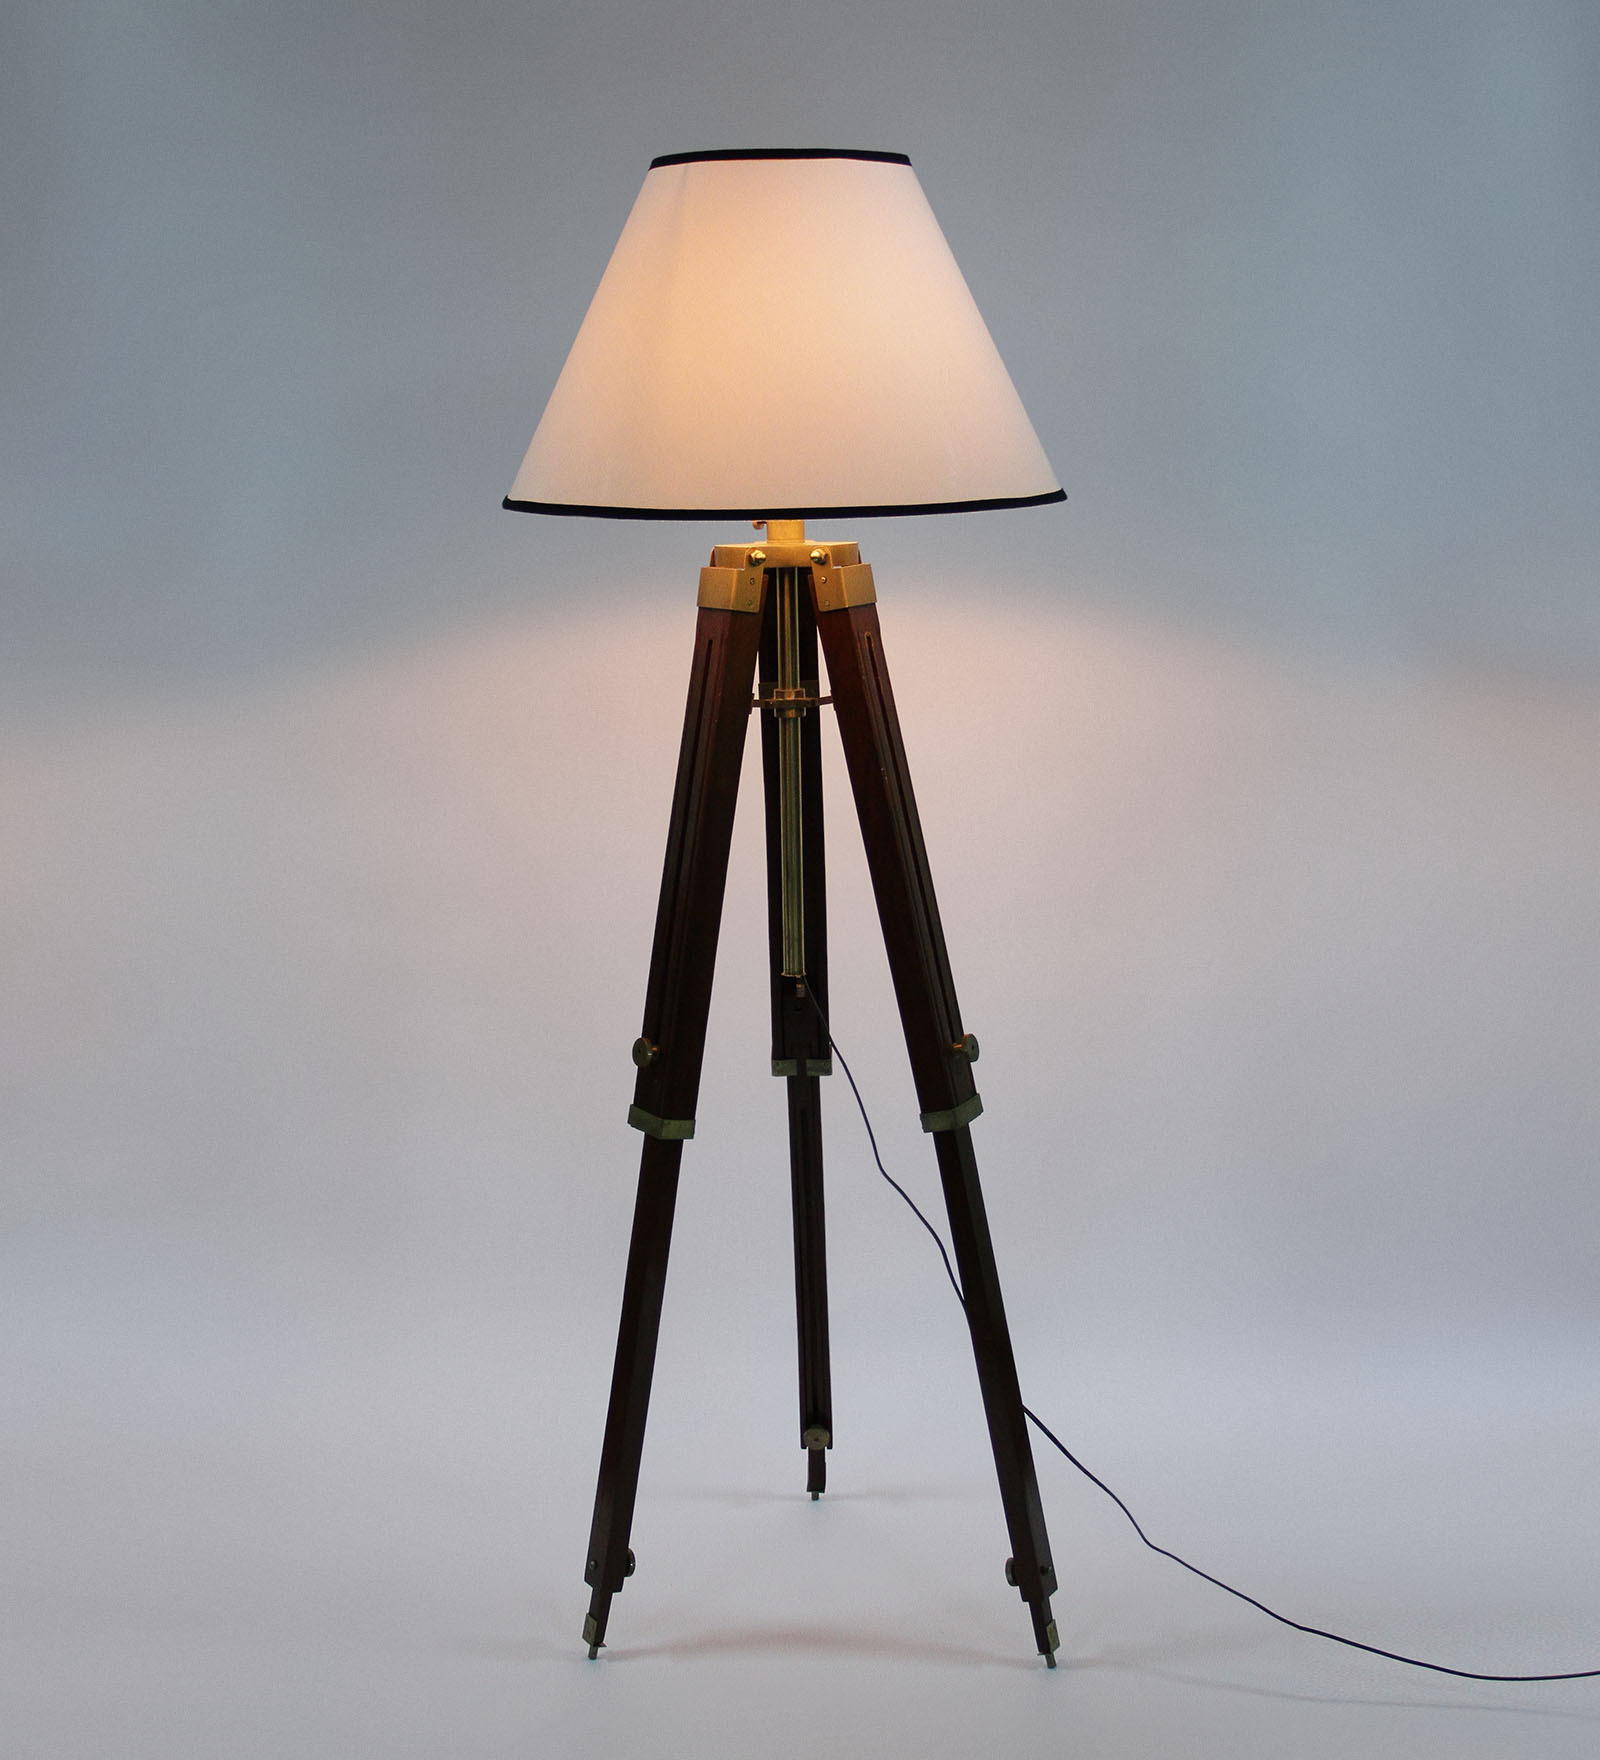 Floor Lamp Wooden White Wooden Base Tripod Floor Lamp Antikcart